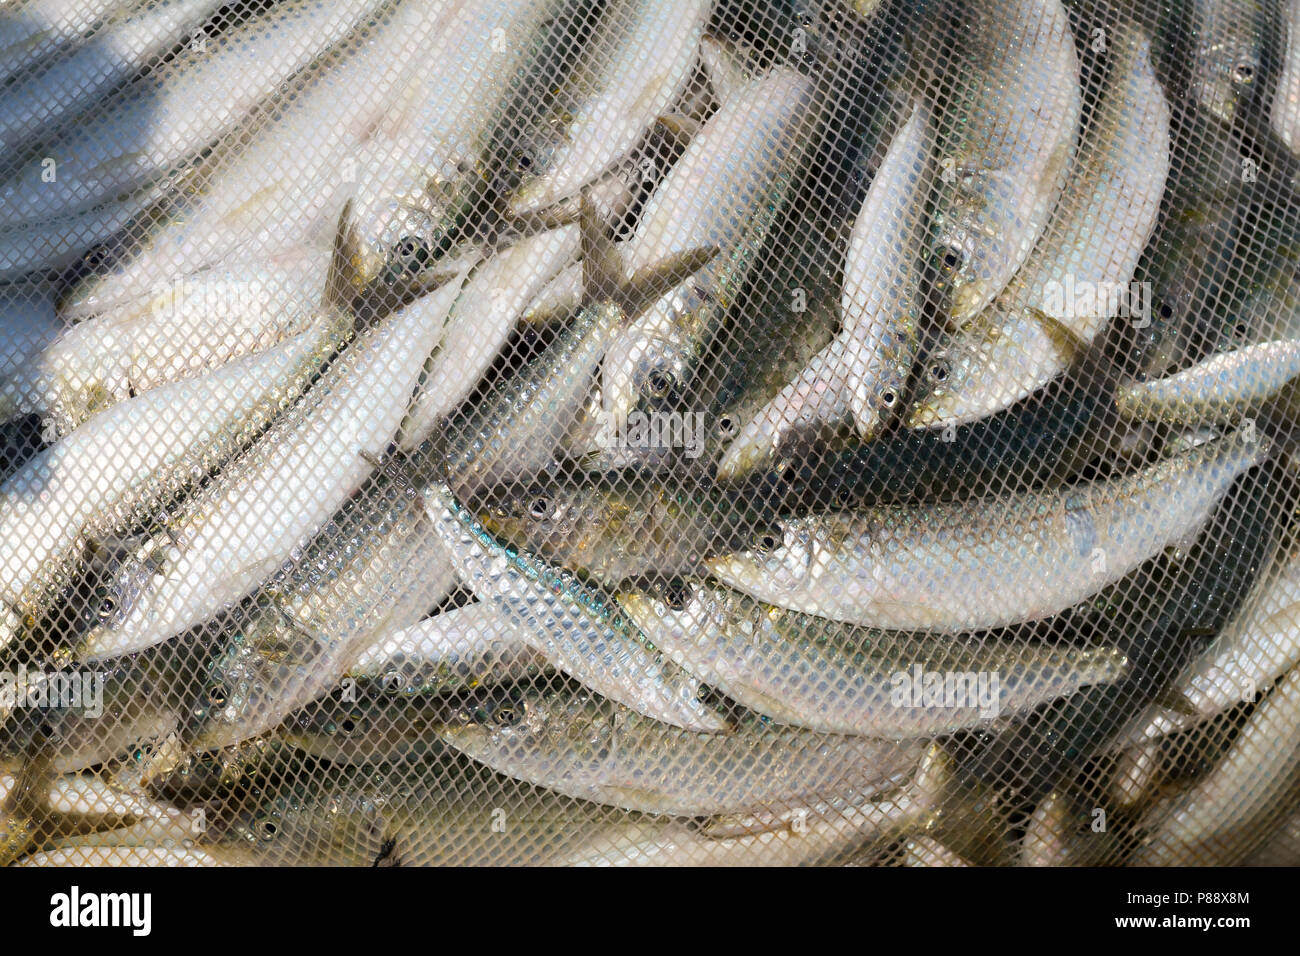 Sardines in a fishnet, Oman - Stock Image